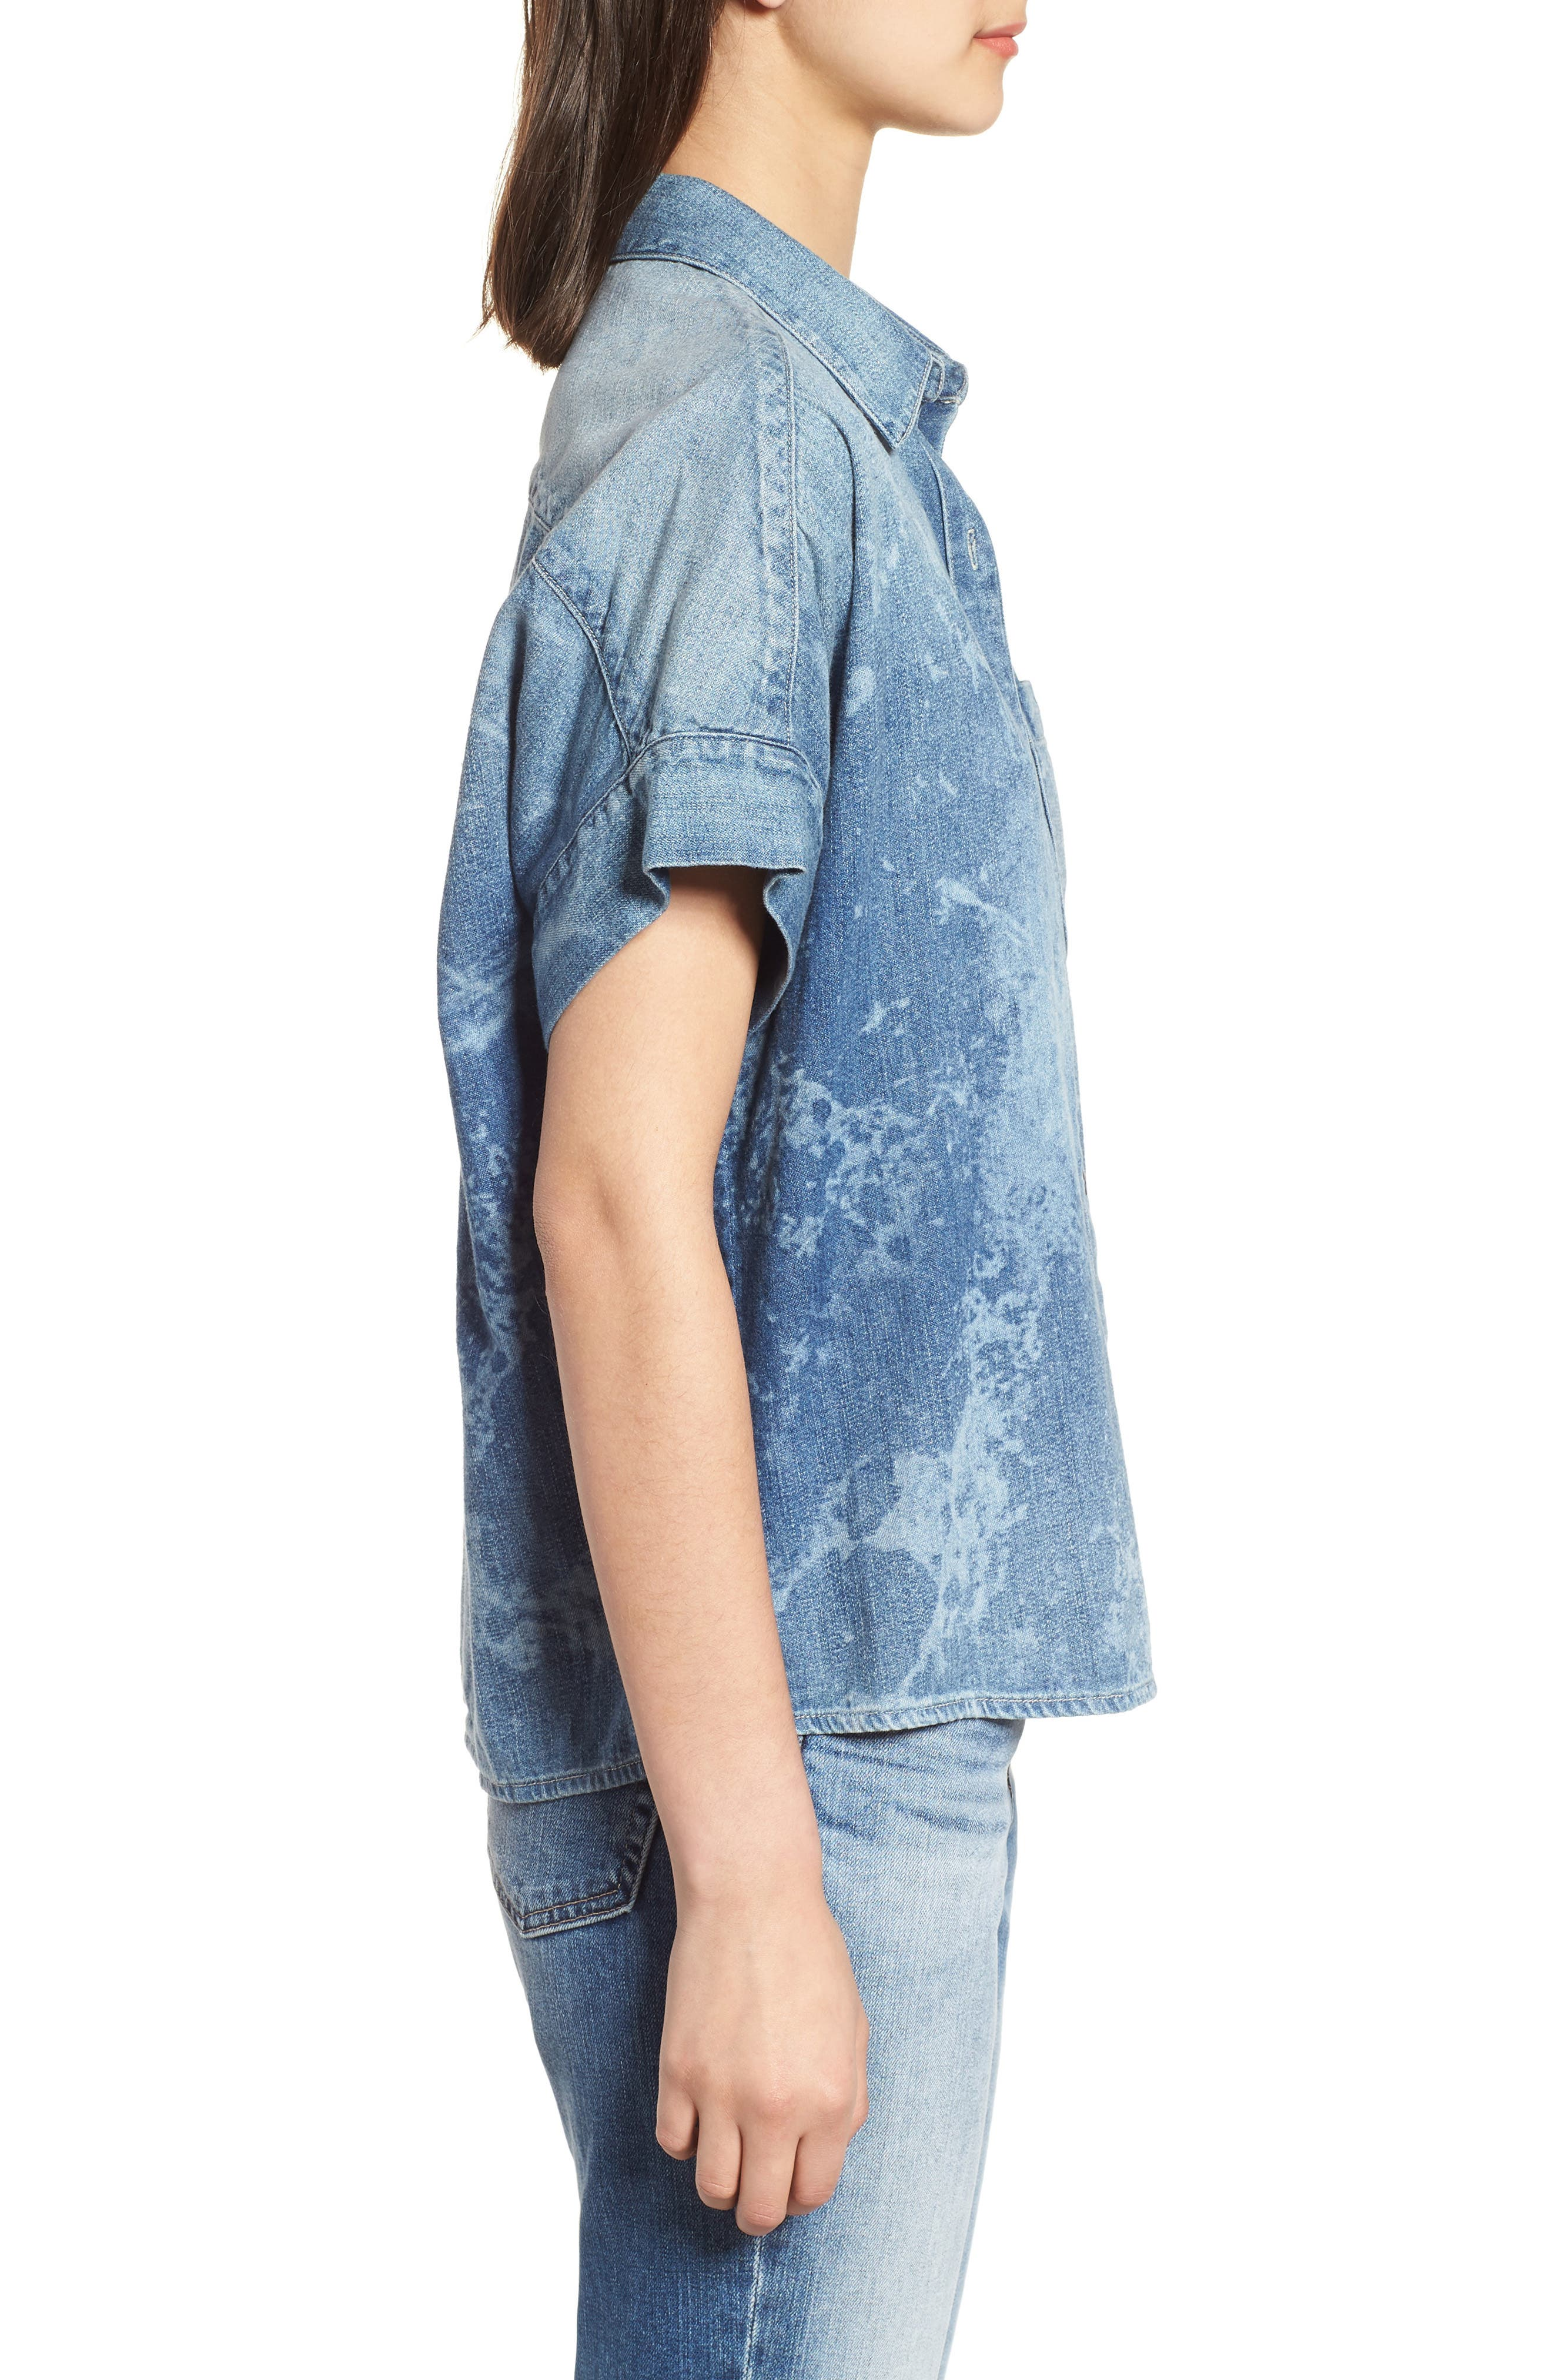 Hadley Denim Shirt,                             Alternate thumbnail 3, color,                             SUBLIME